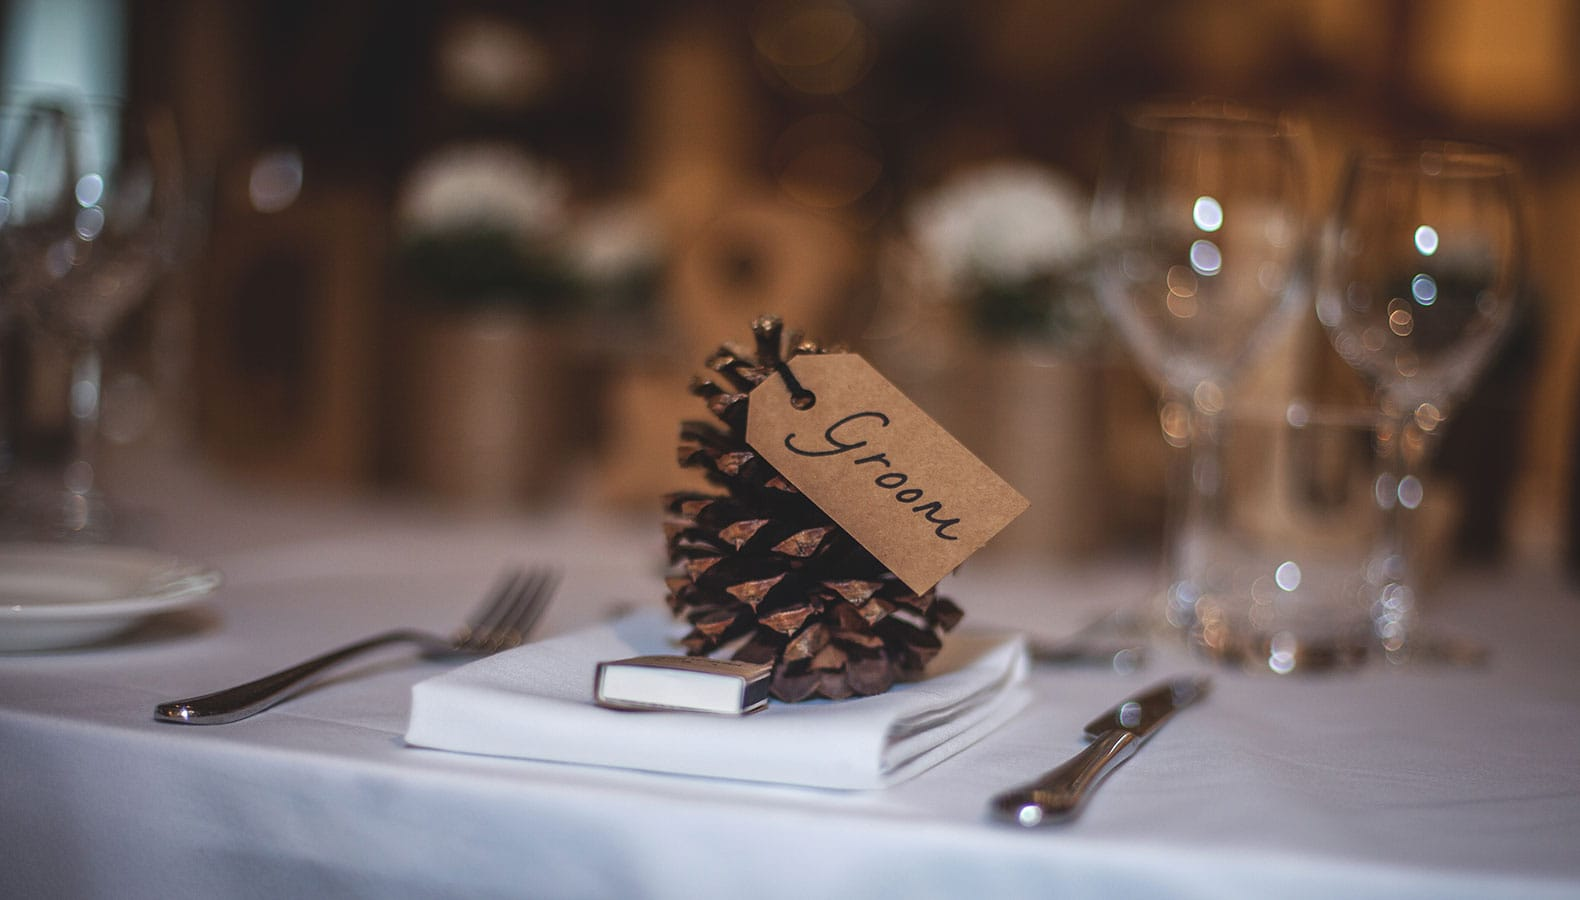 Pine cone table setting name place holder at a wedding in a marquee - ideas for affordable marquee decoration